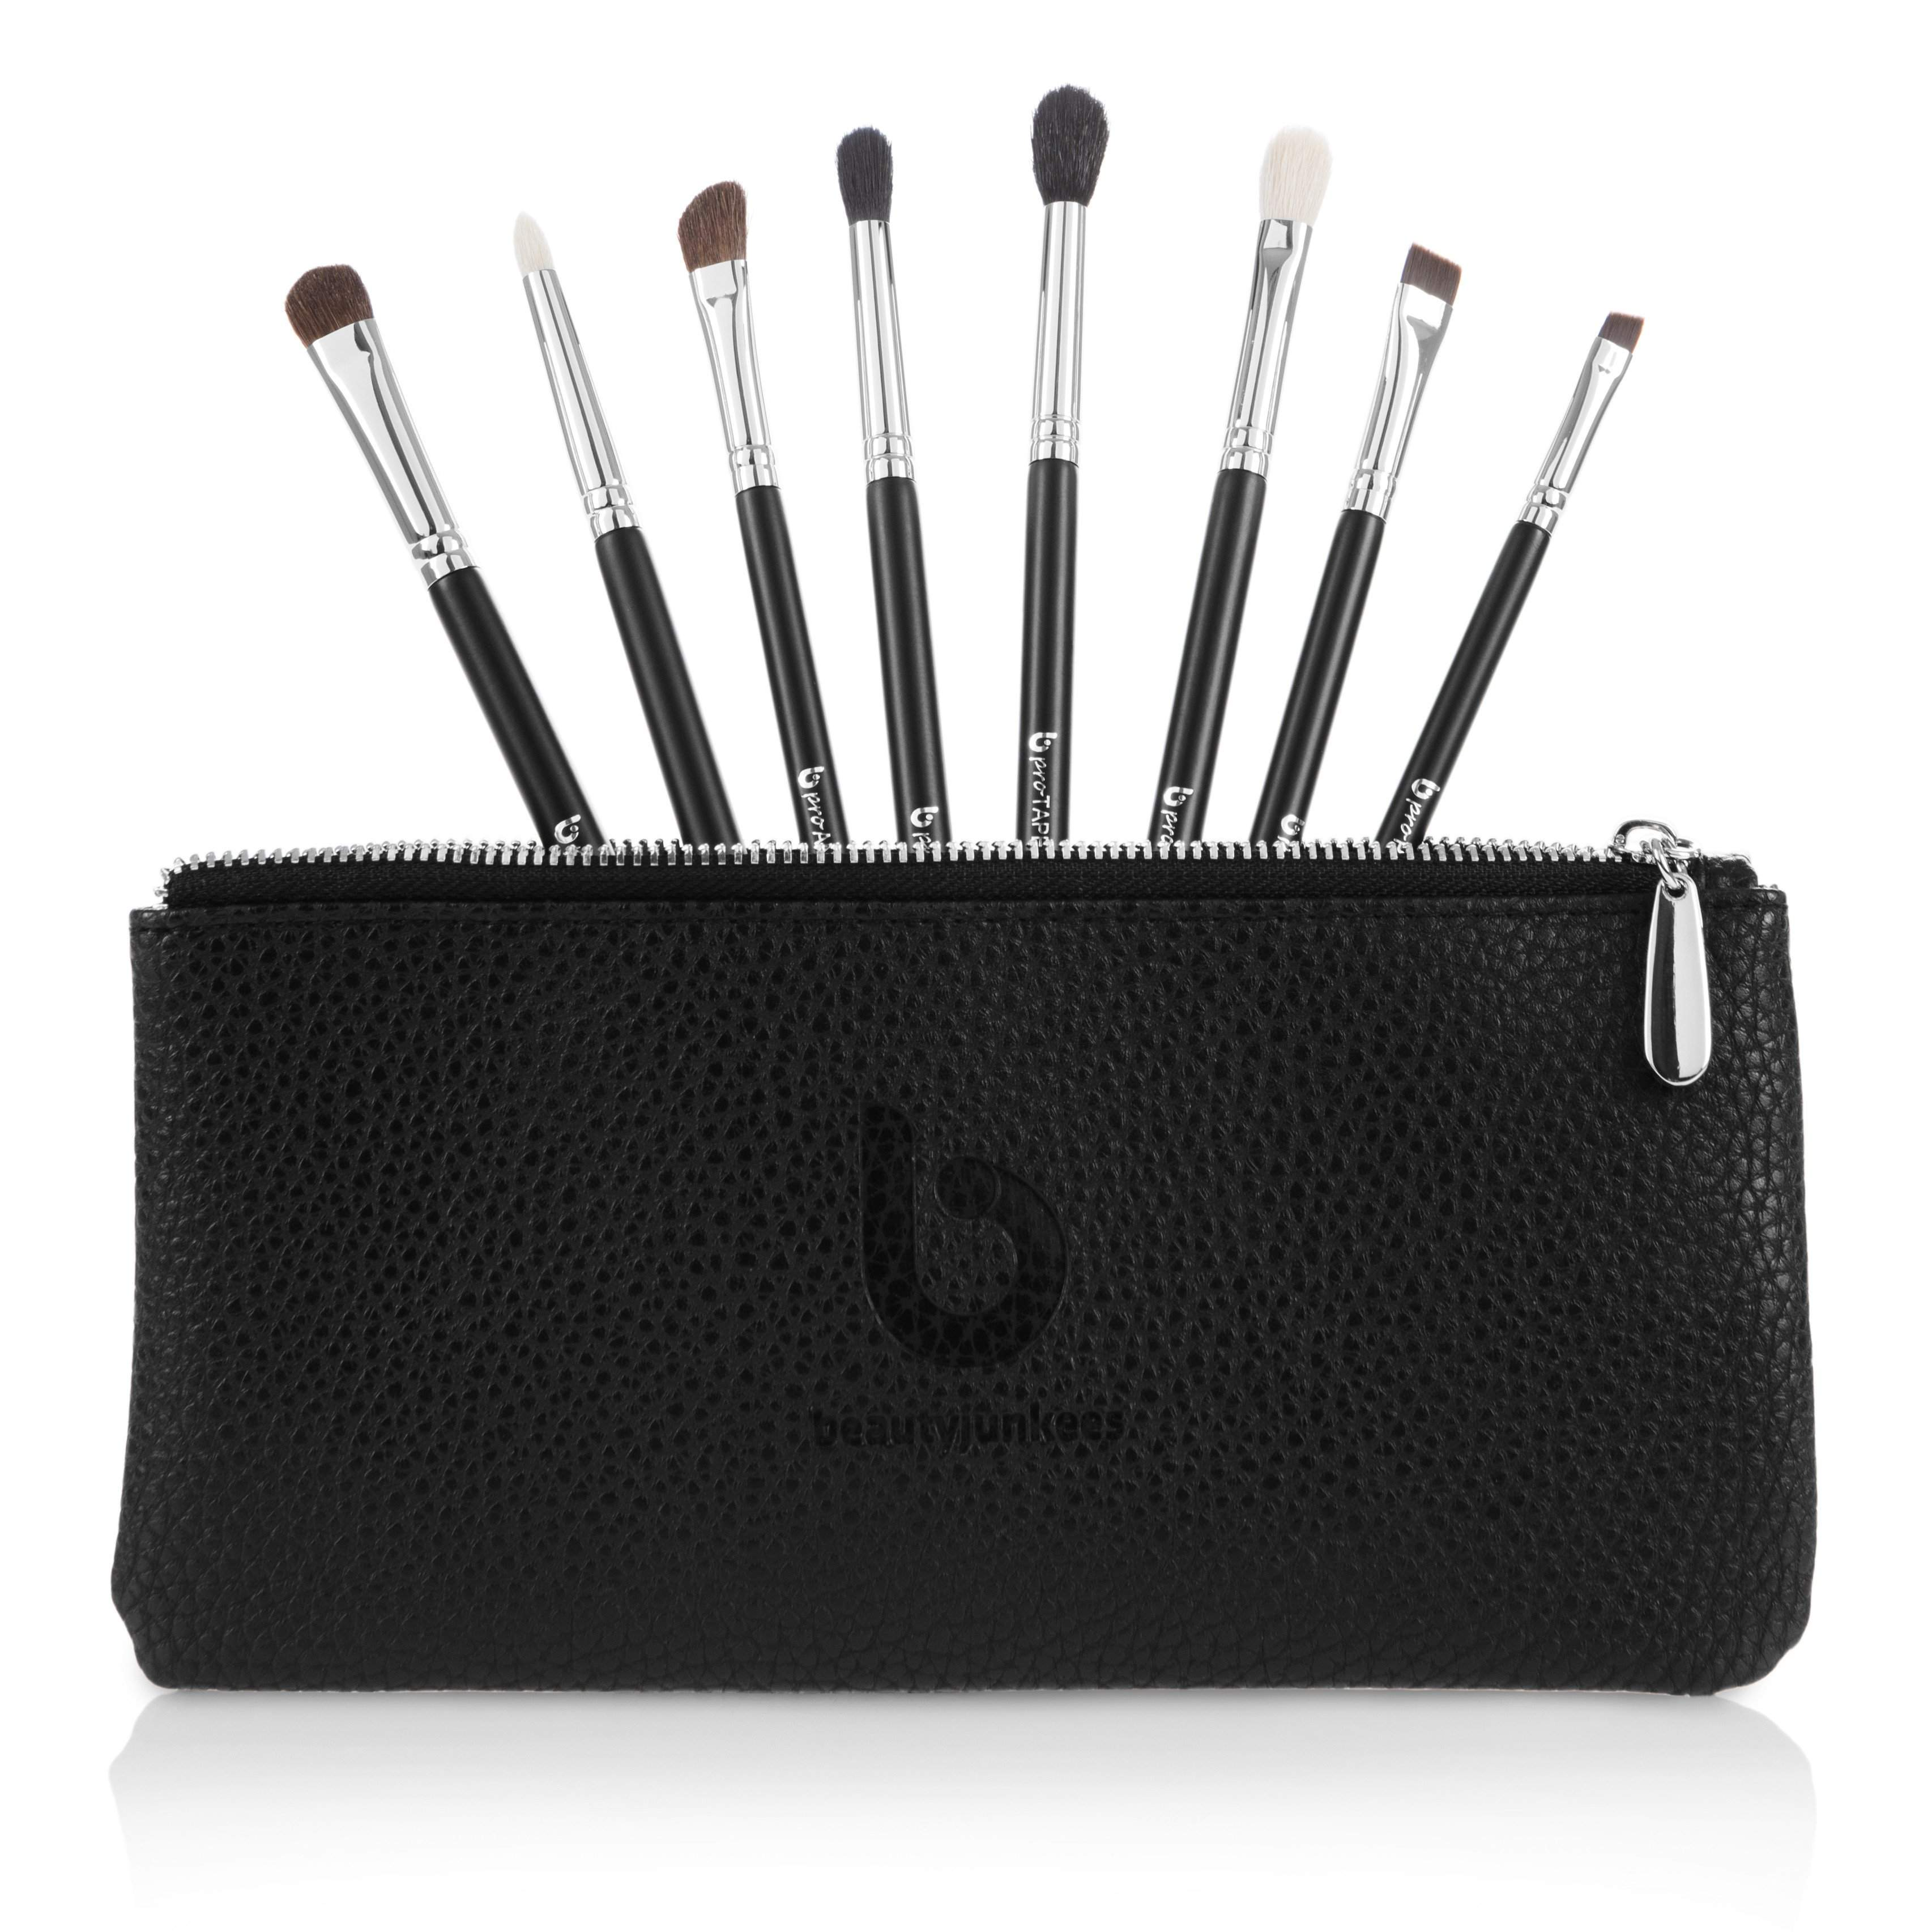 a4f514b32b6 Buy the 8 Piece pro Series Eye Brush Set with Makeup Brush Case by Beauty  Junkees